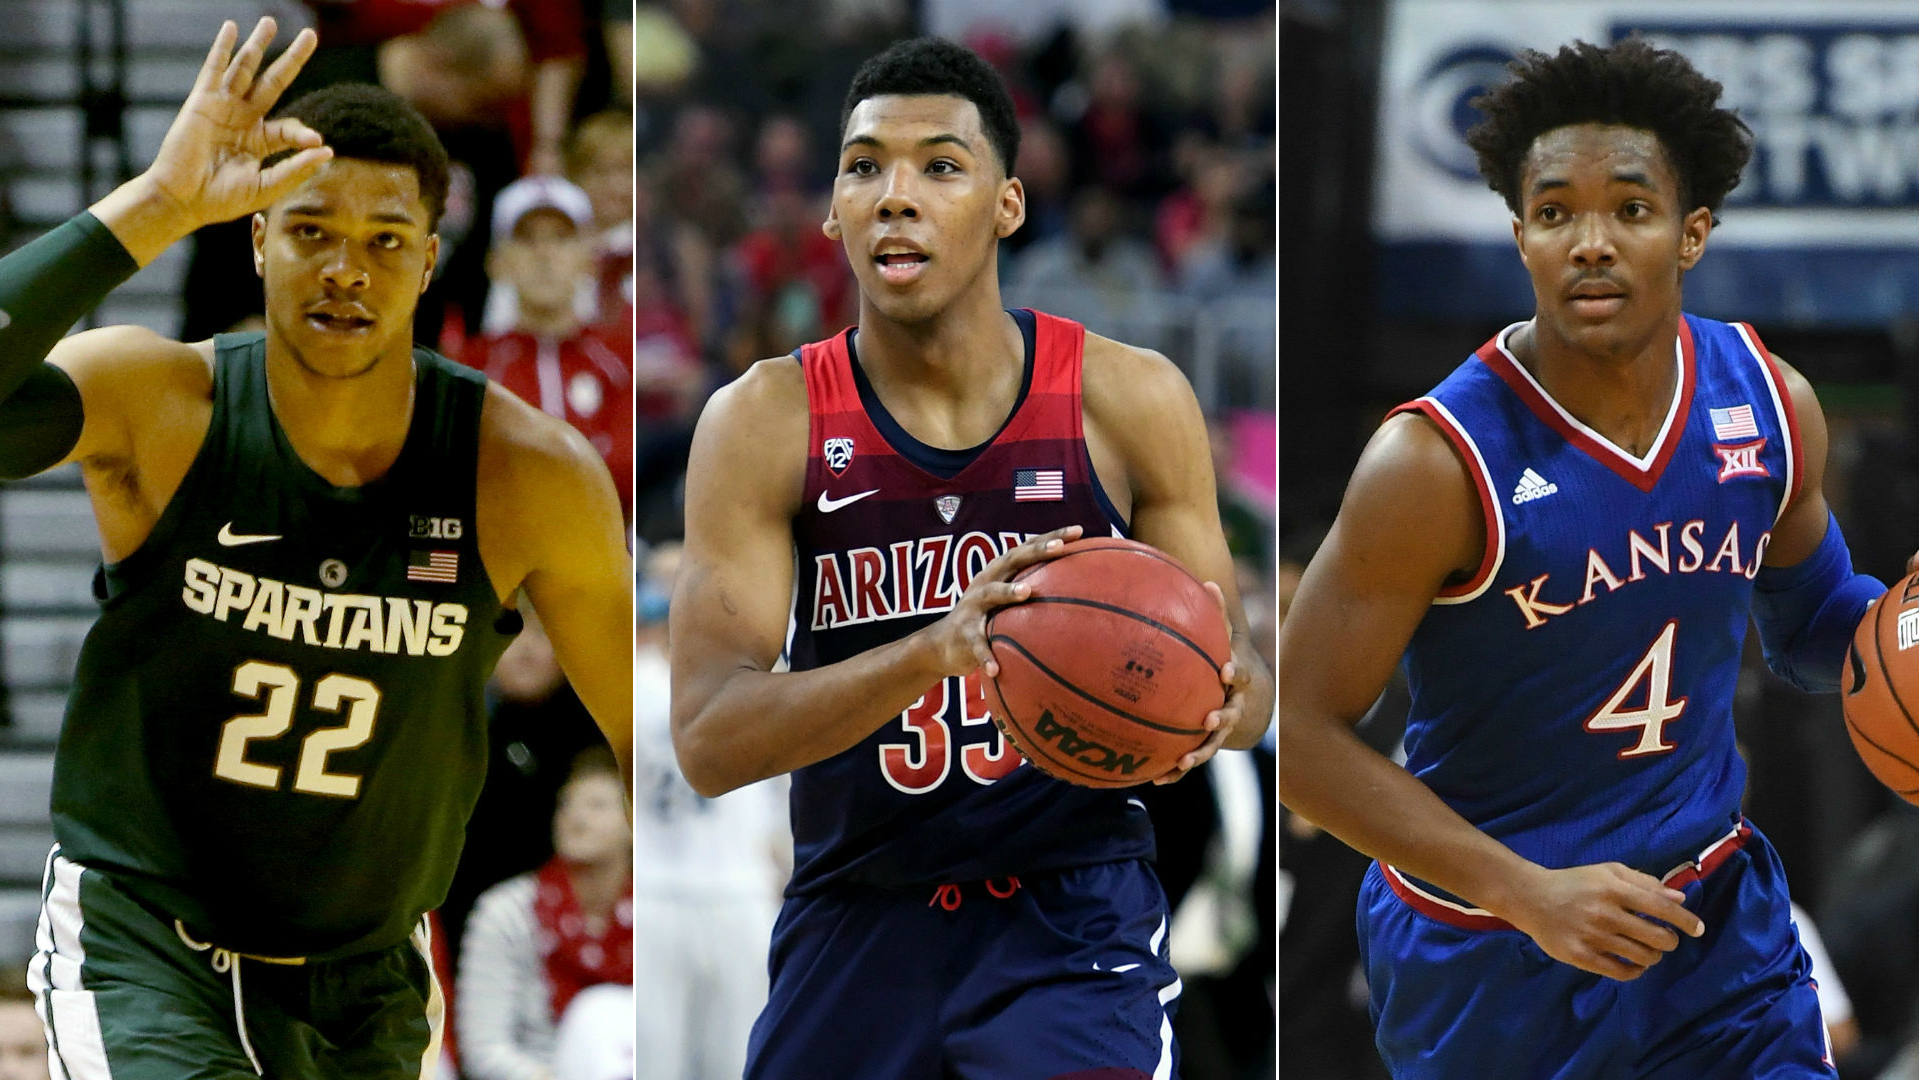 College Basketball Recruiting Rankings 2017 Updated By: College Basketball Rankings: Arizona Solidifies No. 1 Spot